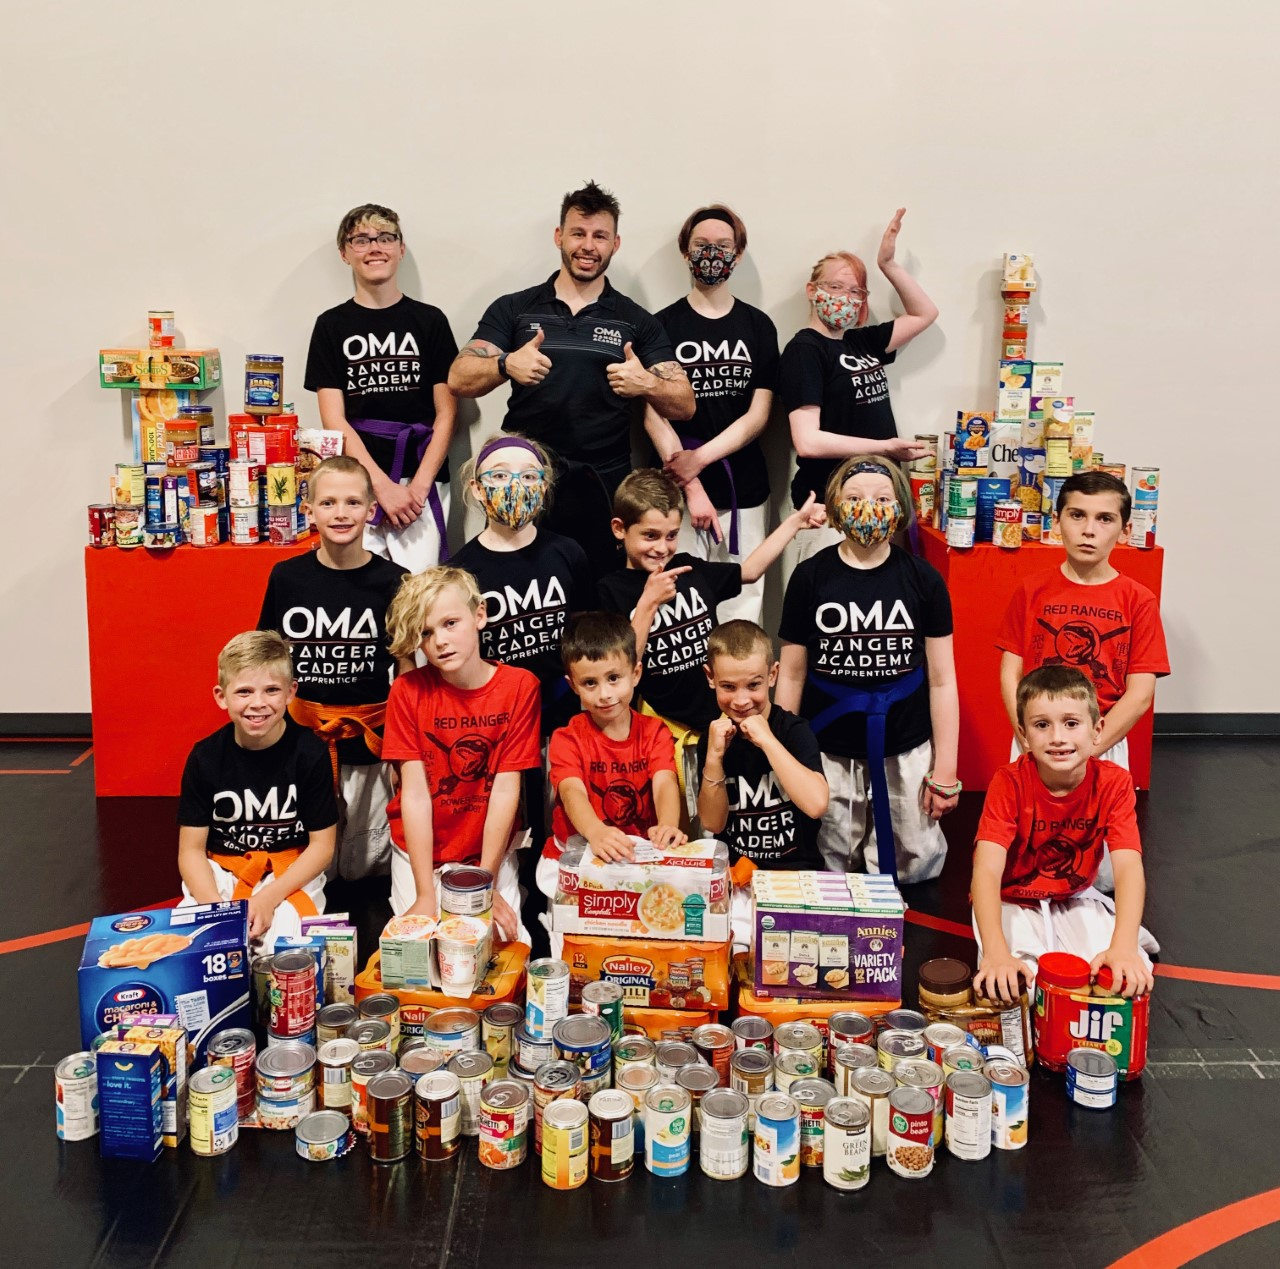 Karate Kids from OMA Ranger Academy Become Real-Life Heroes by Helping Replenish Local Food Bank with Supplies for Holiday Season